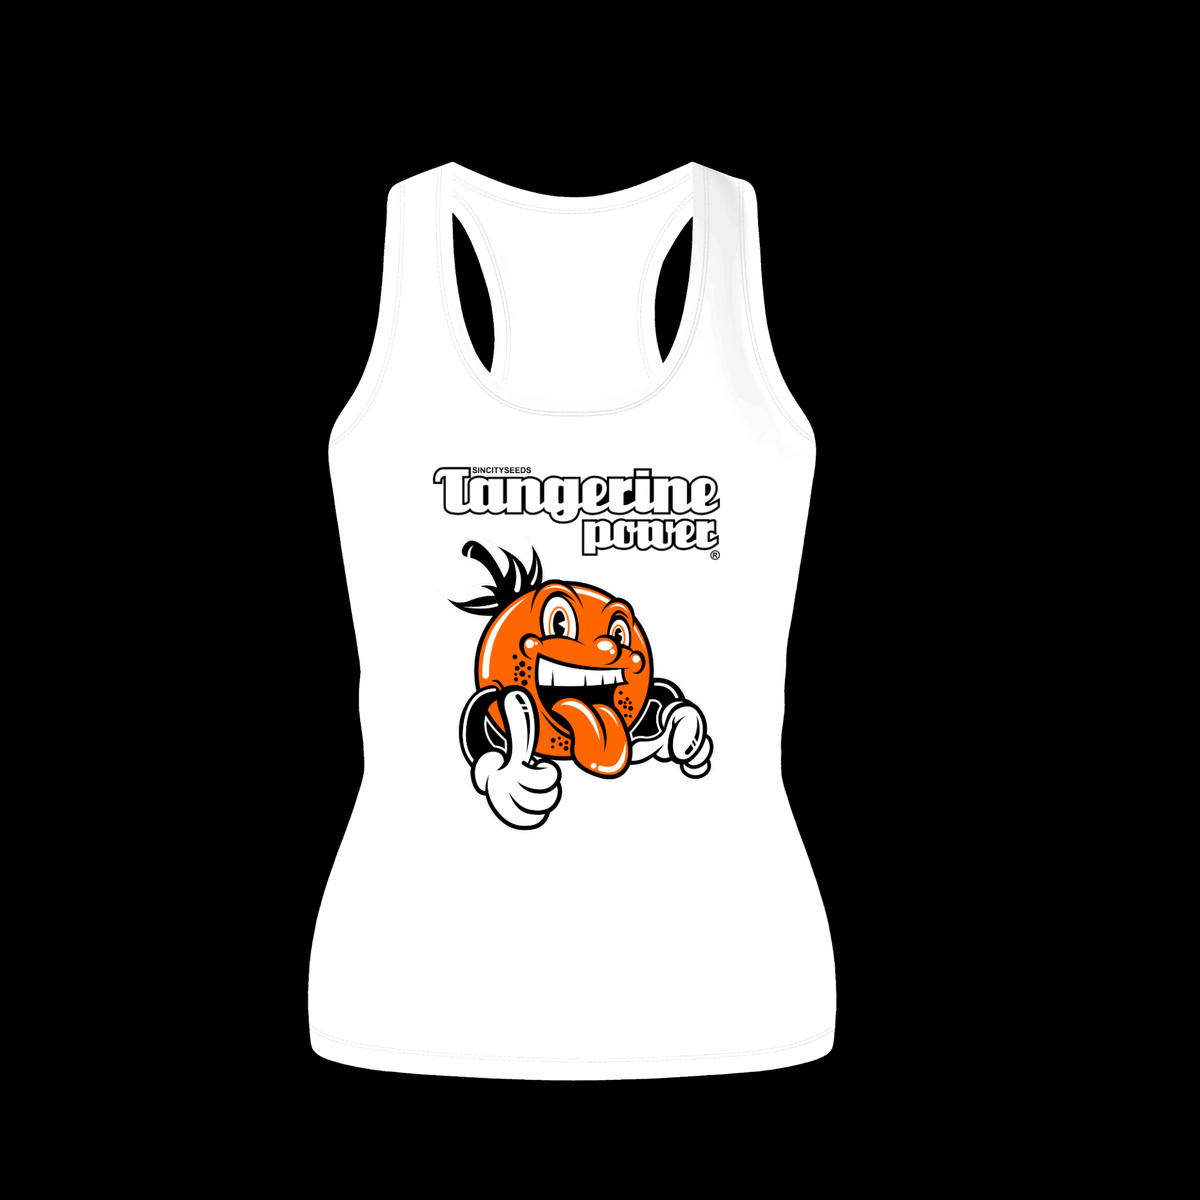 Tangerine Power Women's Tank Top